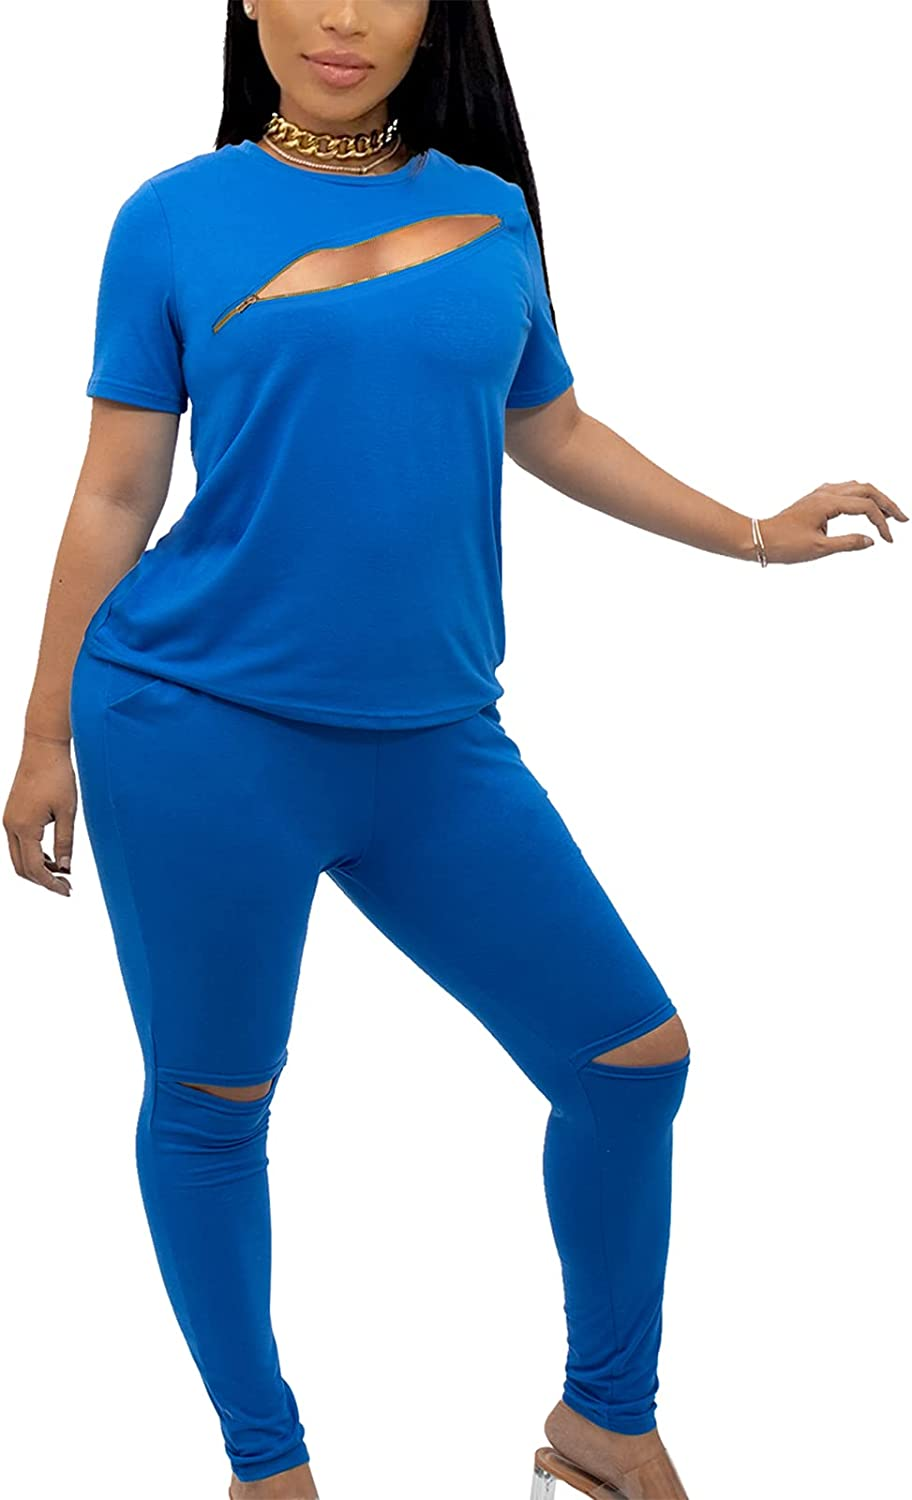 Women Casual 2 Piece Sport Outfits Sets-Sexy Short Sleeve Shirts and Long Pants Joggers Sportswear Set